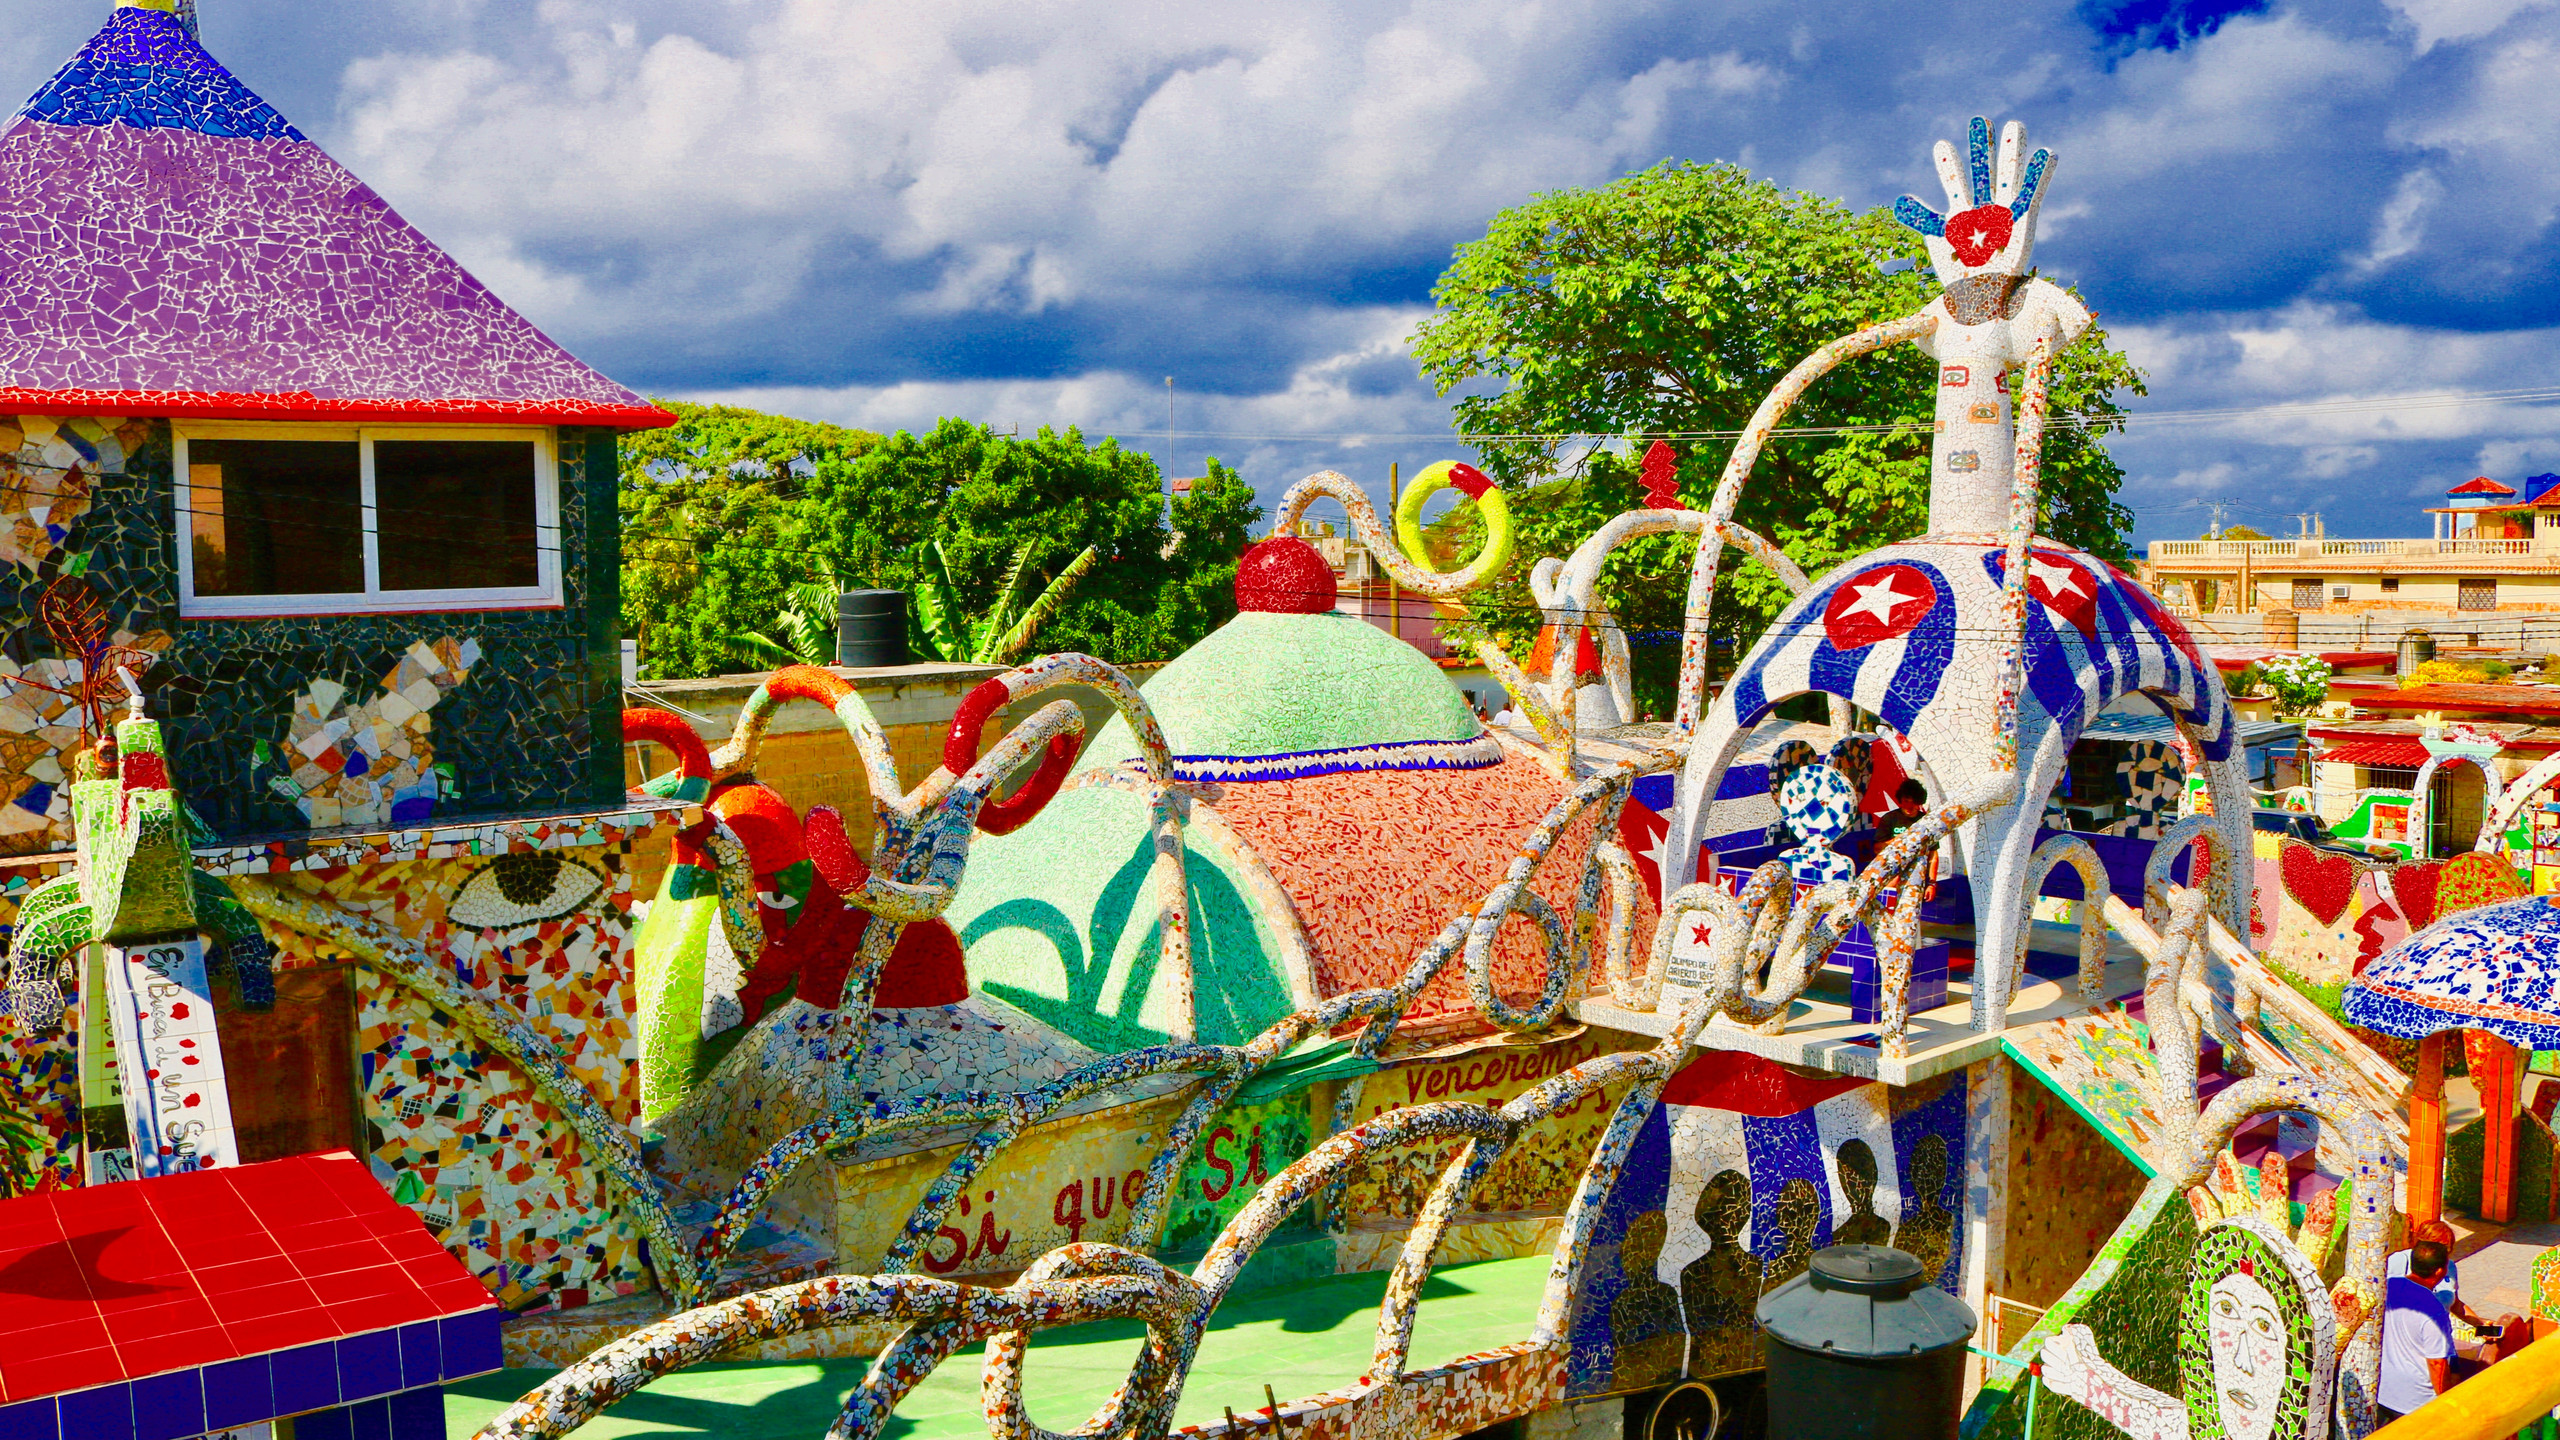 Top of the colorful, mosaic roof of Fusterlandia in Havana, Cuba.